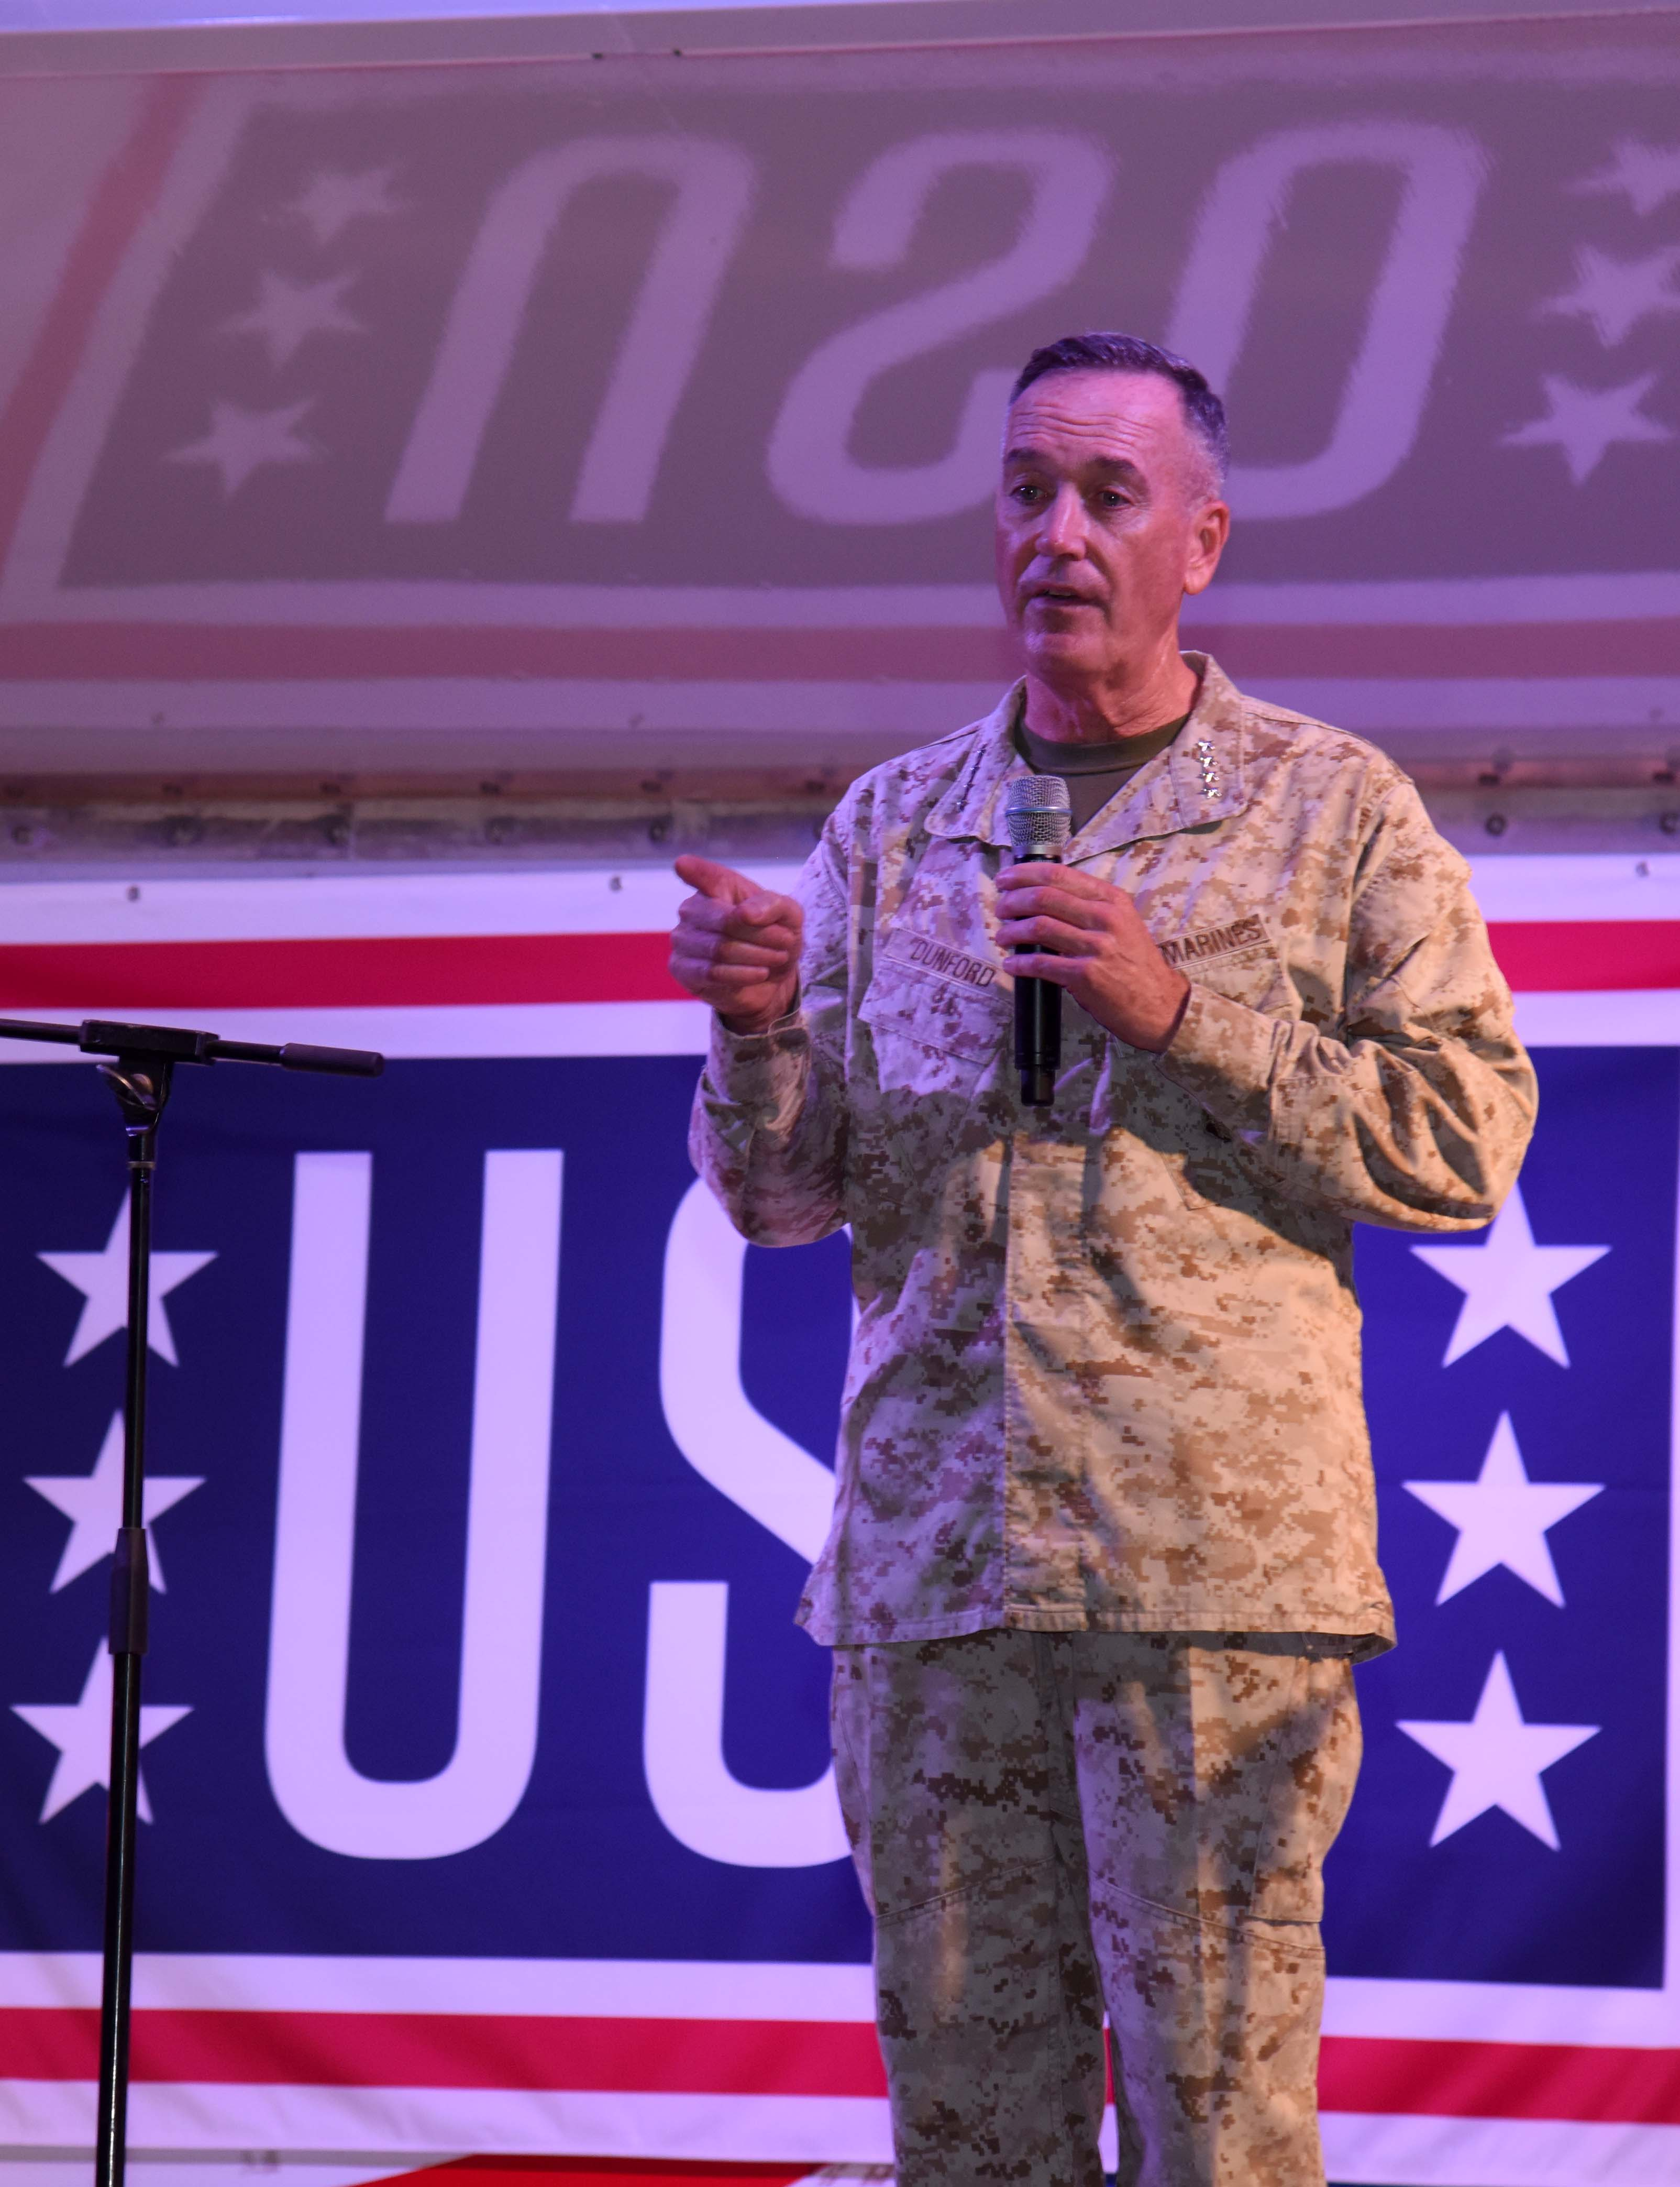 Marine Corps Gen. Joseph Dunford, Chairman of the Joint Chiefs of Staff, introduces the hosts of the 2015 USO Entertainment Troupe during their visit to Camp Lemonnier, Djibouti, Dec. 6, 2015. Dunford joined the tour as the senior leader on its multi-day, three-continent trip to show service members their appreciation during the holiday season. (U.S. Air Force photo by Staff Sgt. Victoria Sneed)